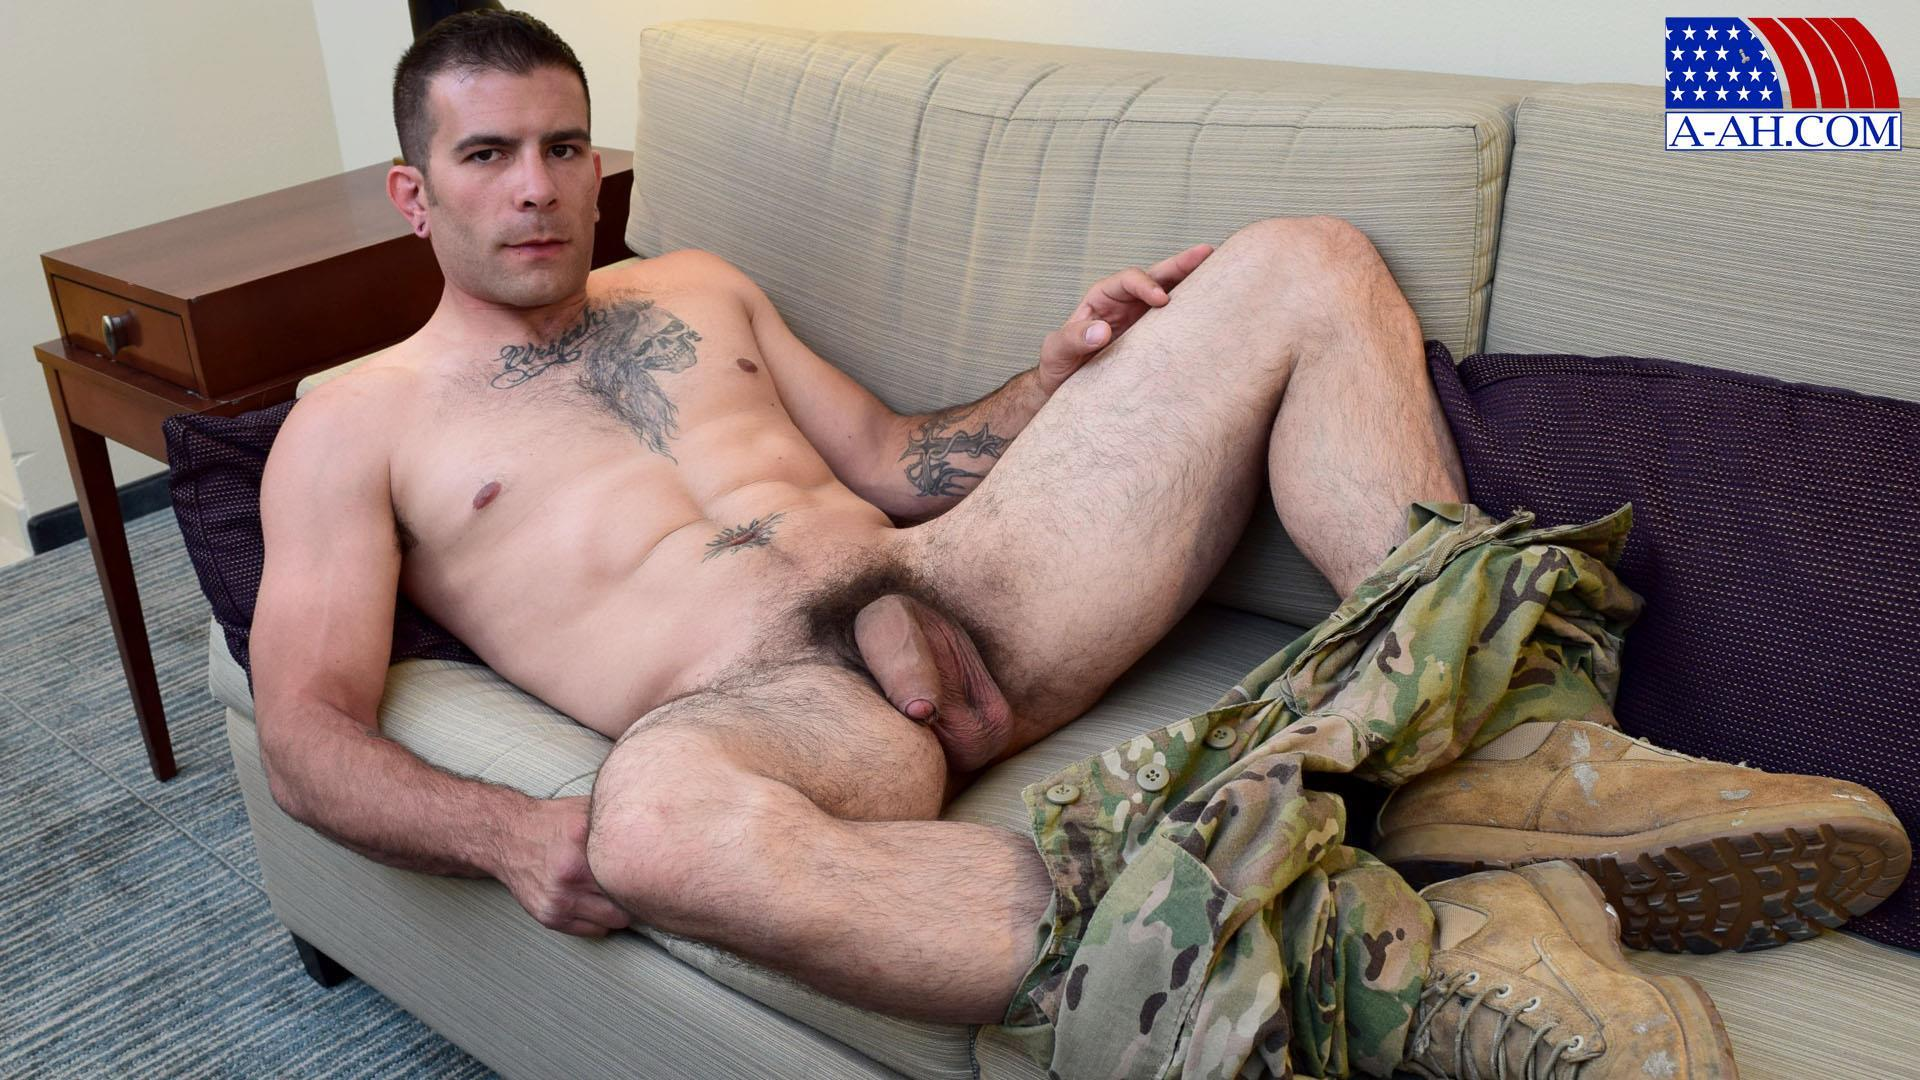 american guy fucking hot guys